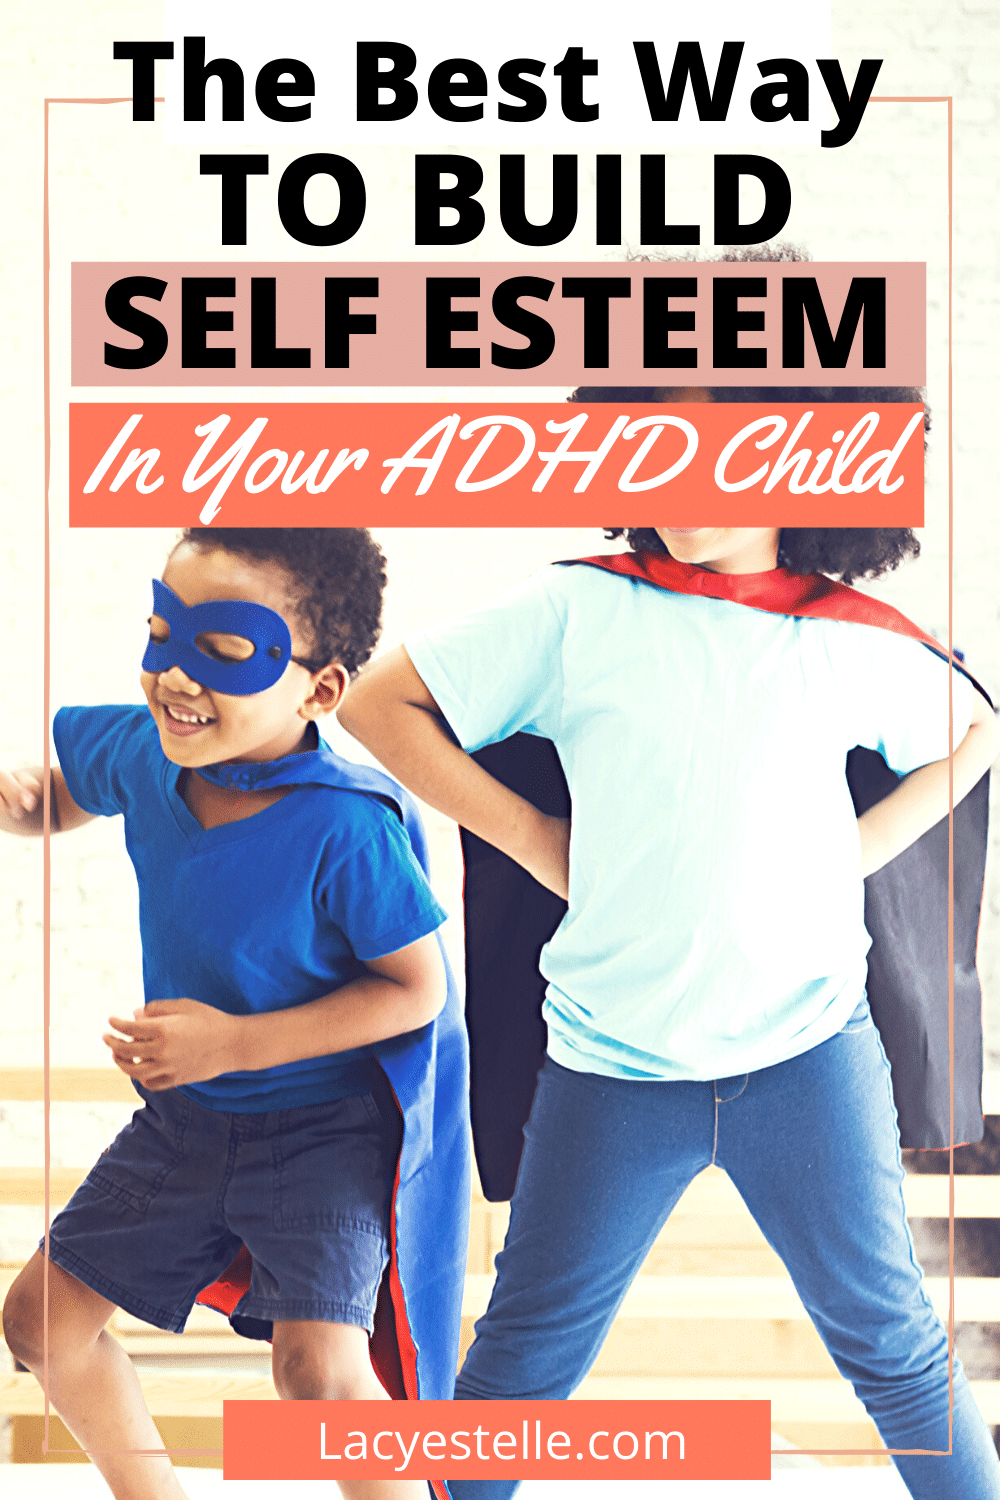 One of my favorite ways to build self esteem in an ADHD child. Adhd children struggle with self esteem more than neurotypical children.